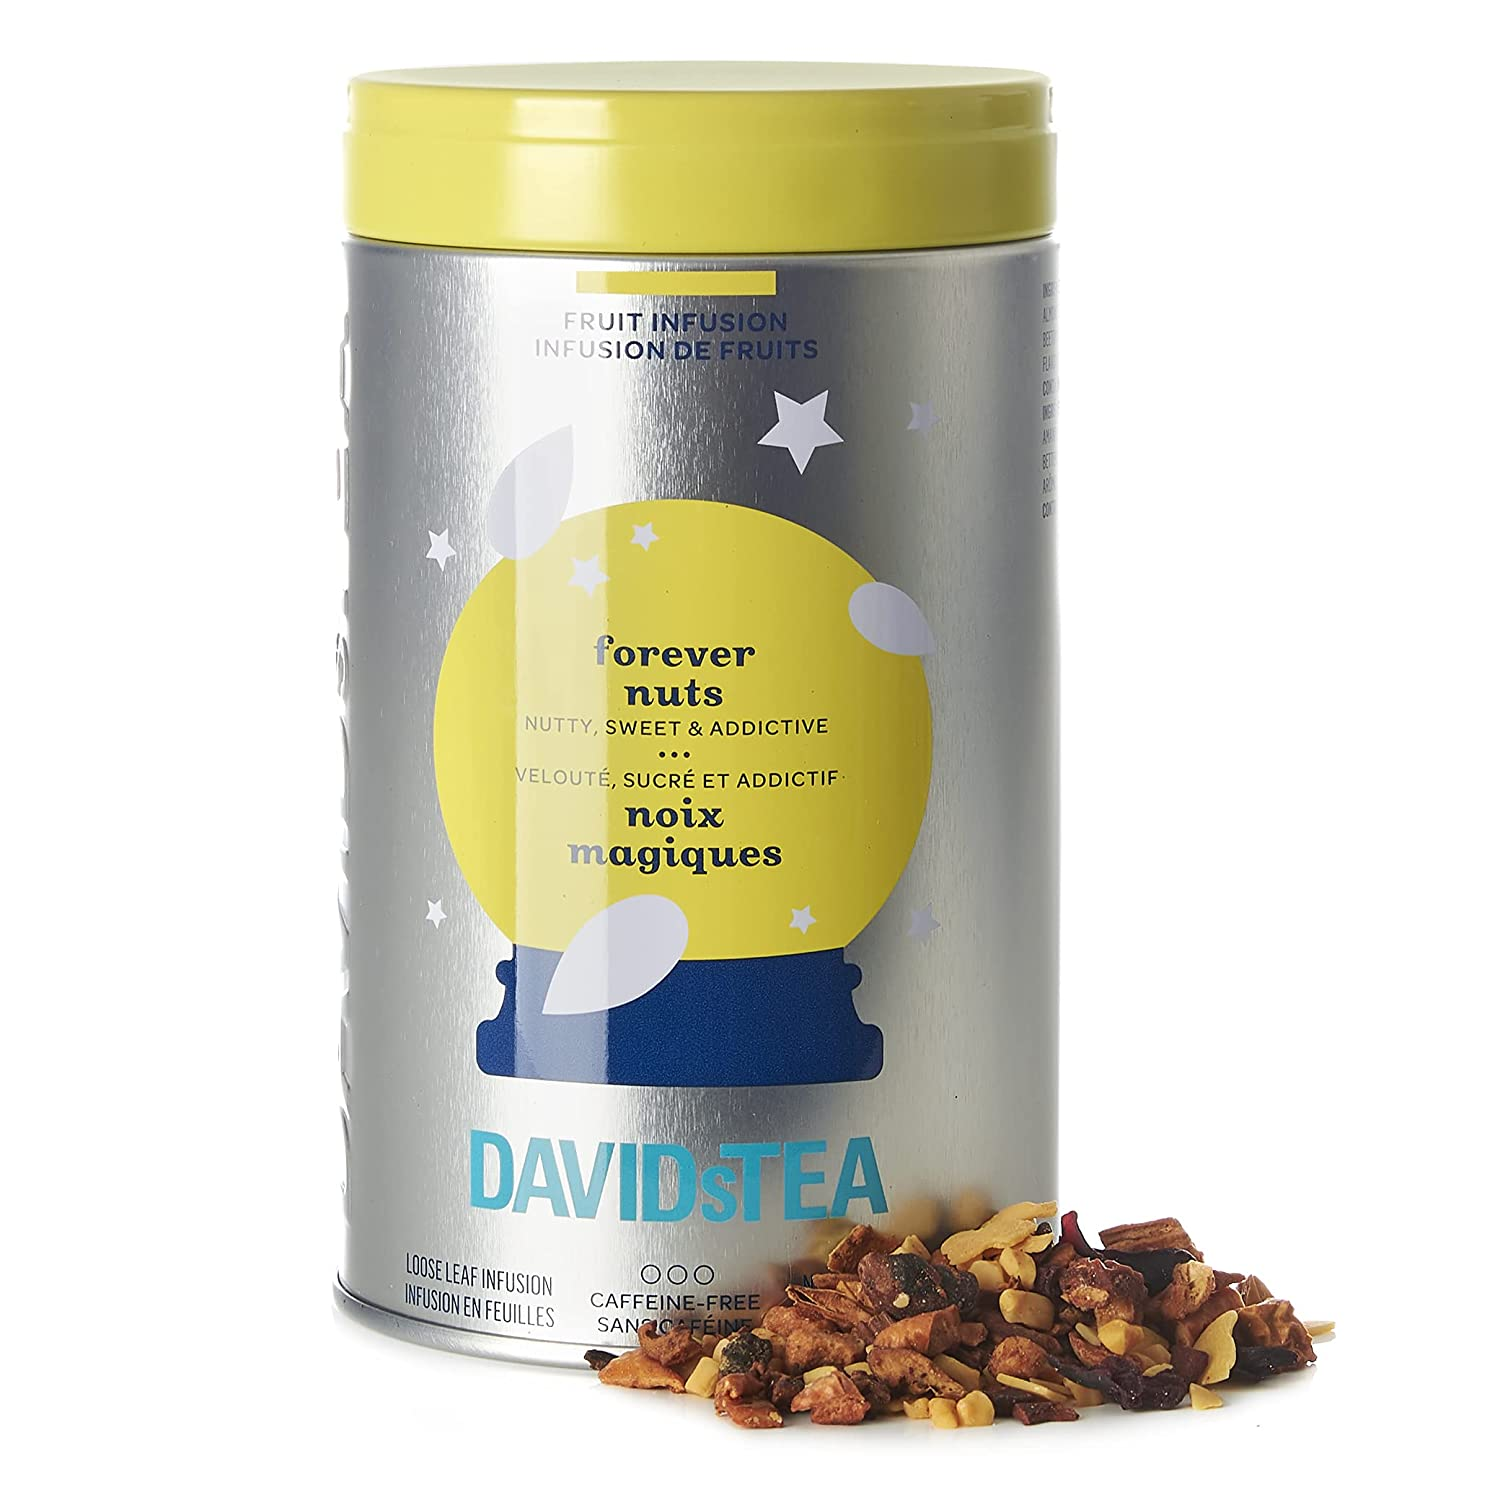 DAVIDsTEA Forever Nuts Spiced Loose Leaf Herbal Tea Iconic Tin, with Almonds, Apple, and Cinnamon, 101g / 3.6oz